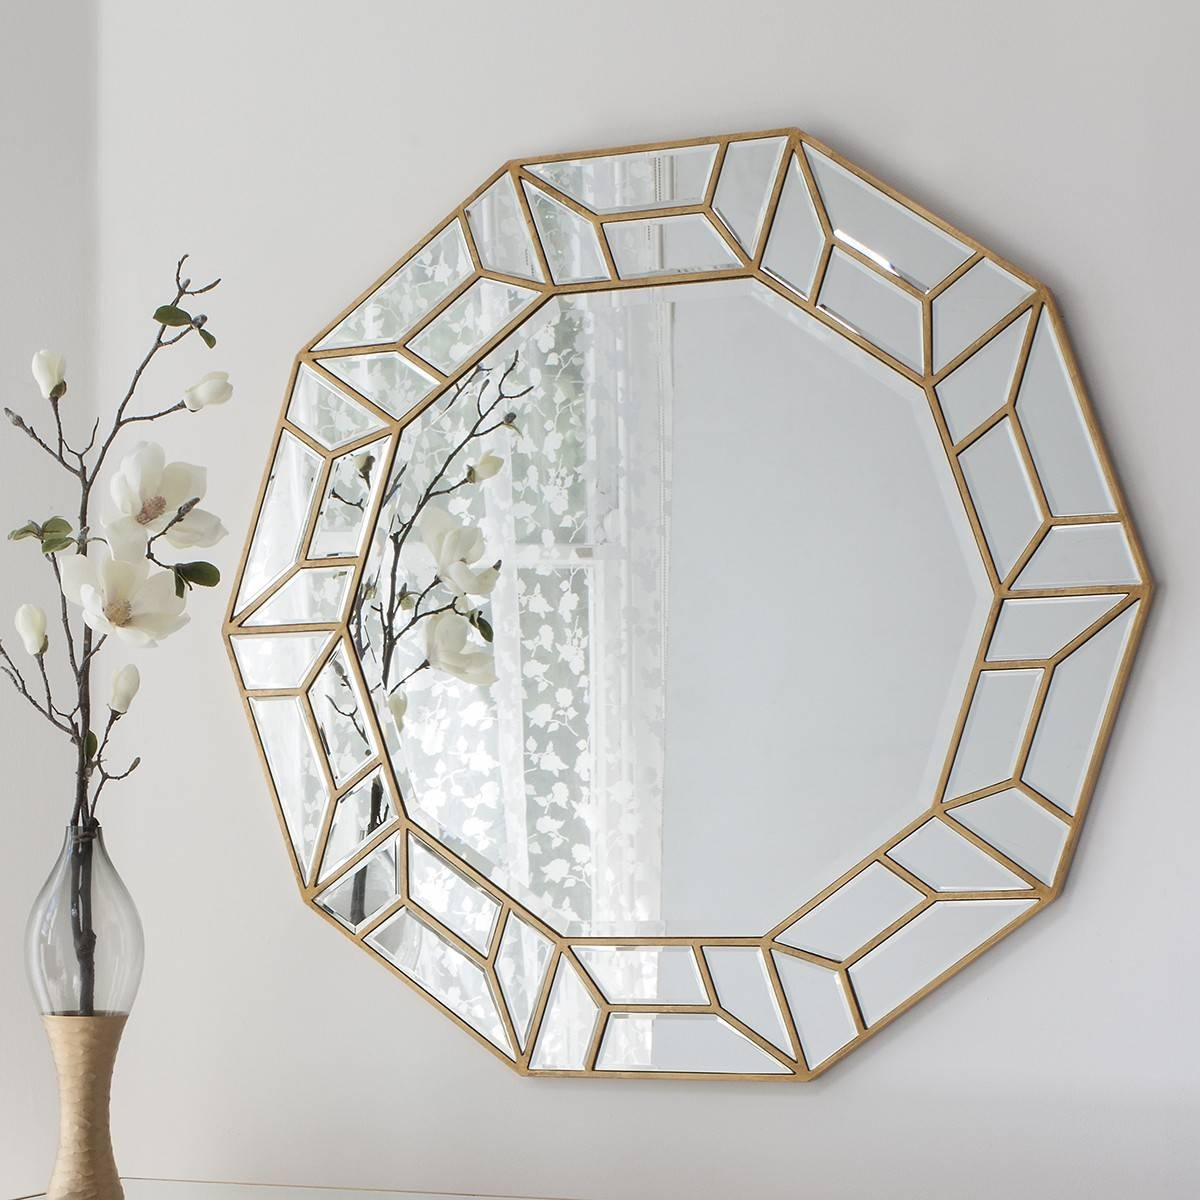 25 Inspirations Of Art Deco Style Mirrors